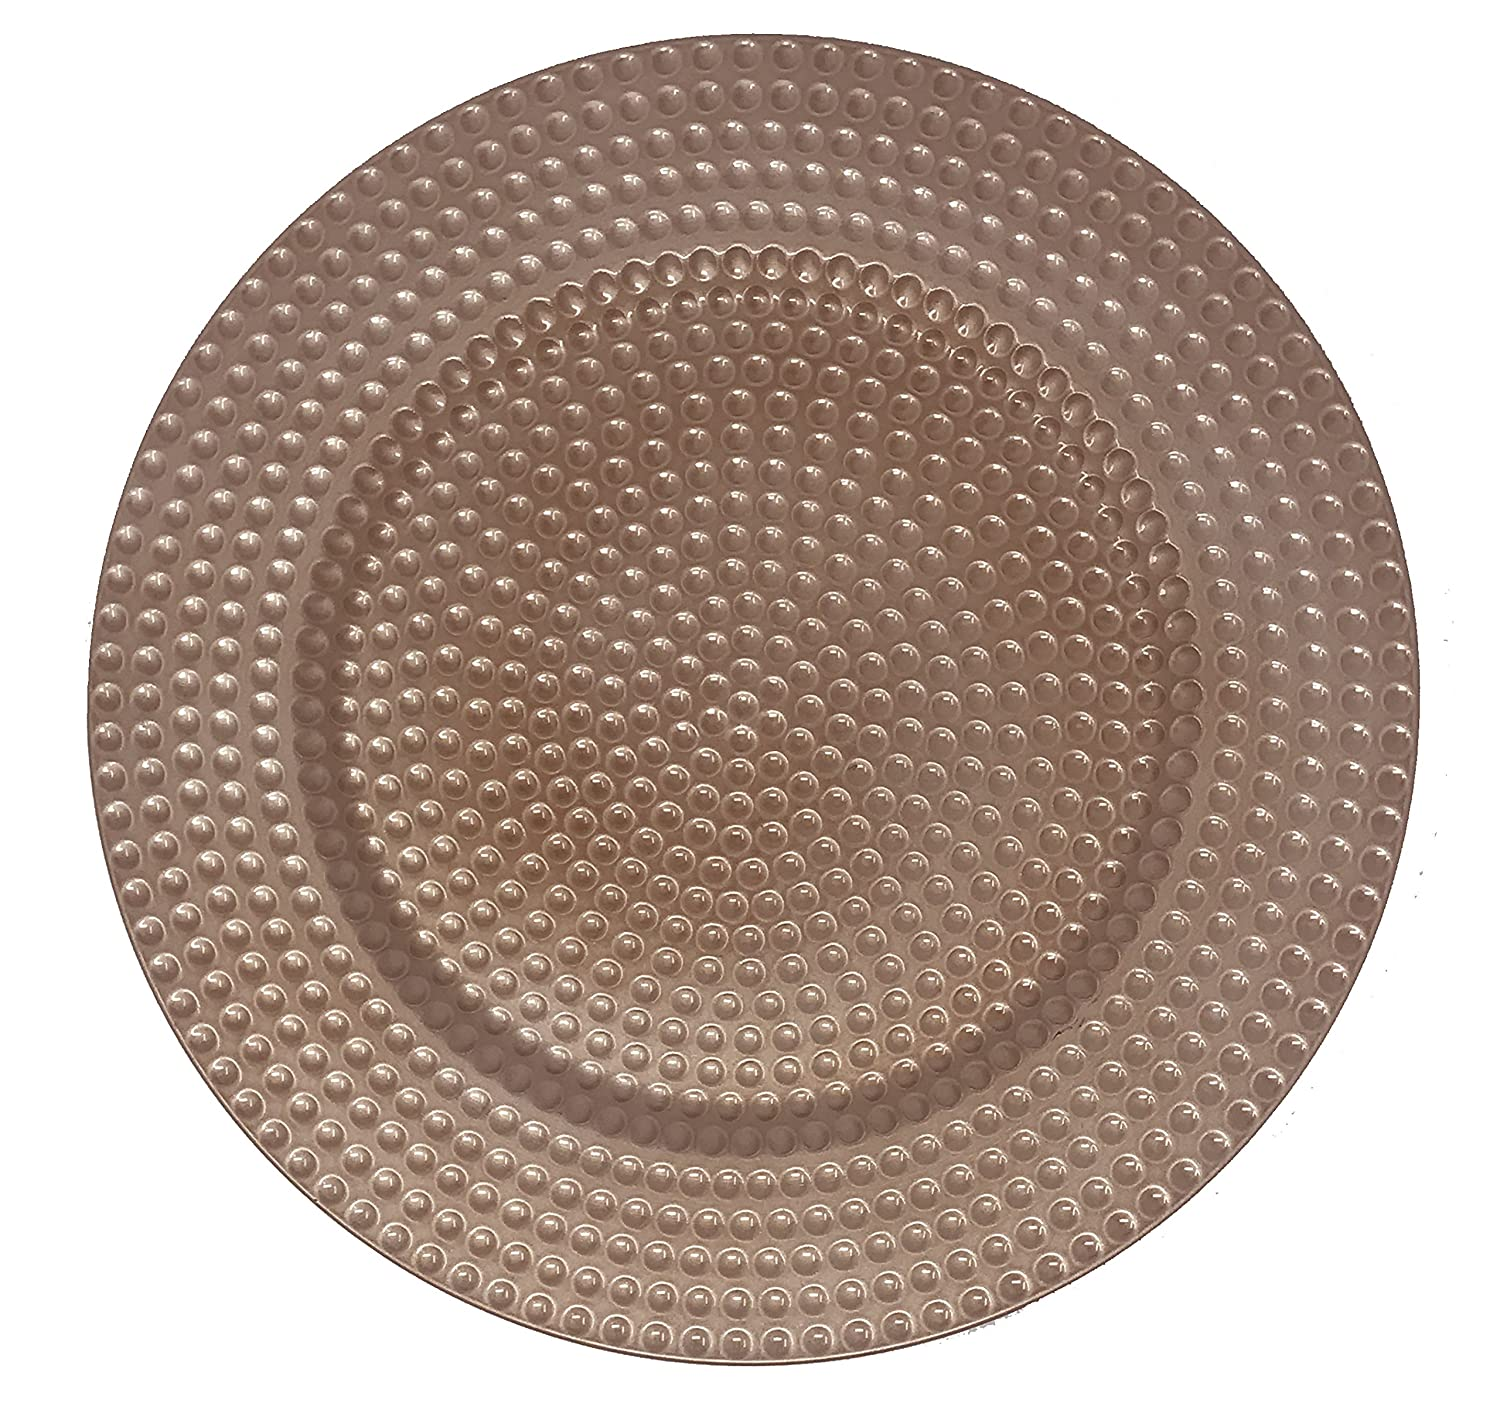 AK-Trading - Set of 12, Premium Finest Quality Party Plate Chargers, 13-Inch Round,Copper Hammered Design AK TRADING CO.